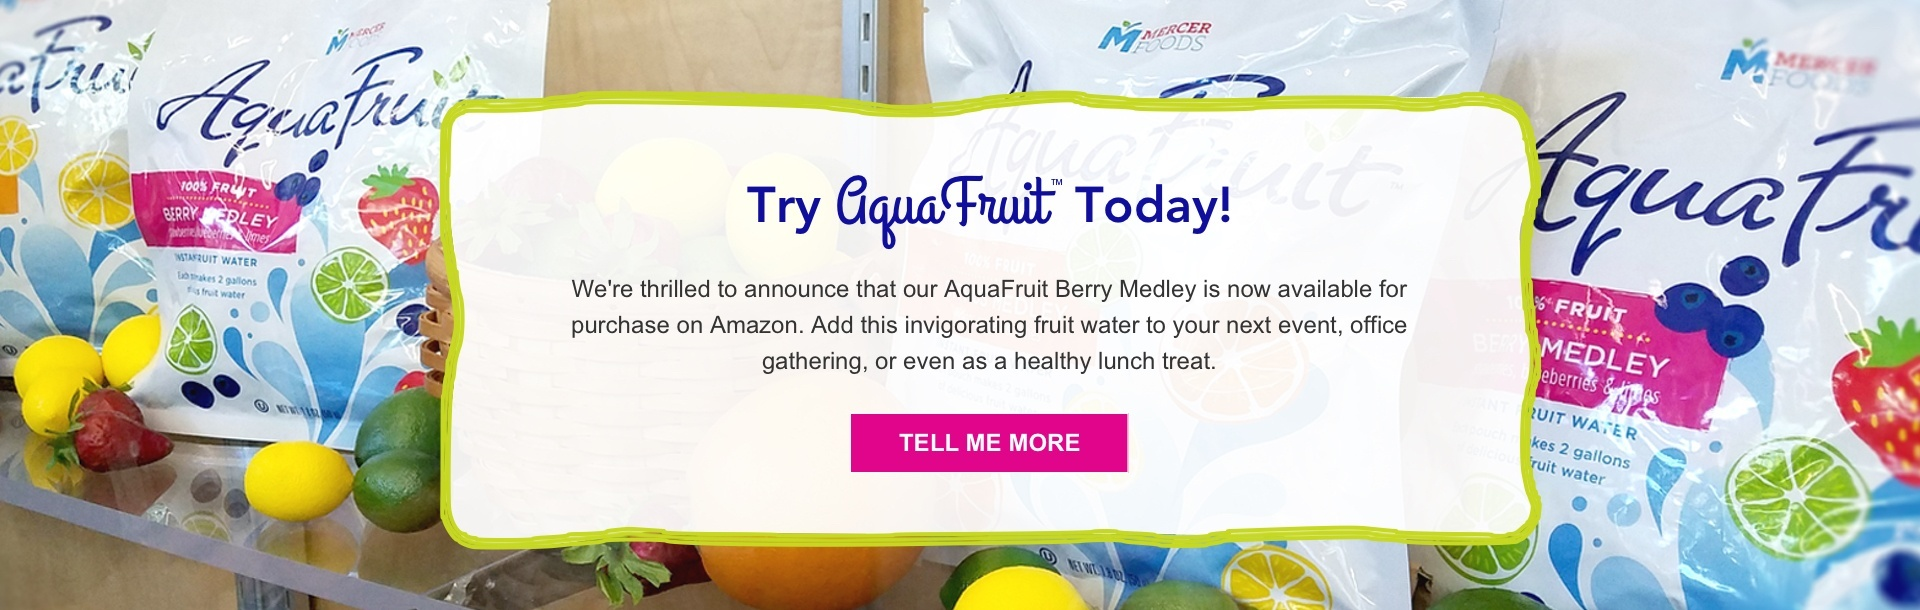 Get AquaFruit Infused Fruit Water Berry Medley on Amazon Today!